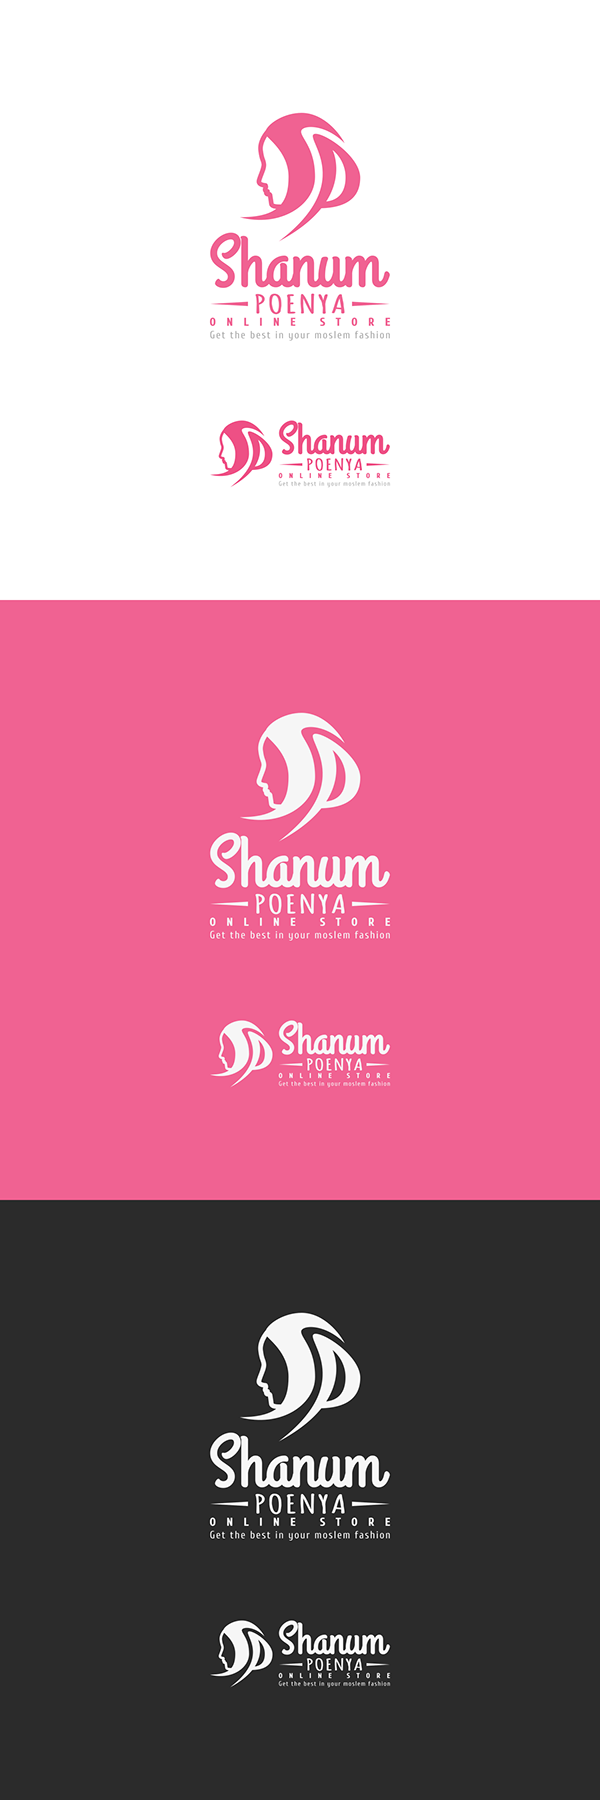 Check on my Behance: Shanum Poenya Logo Design (Hijab, Online